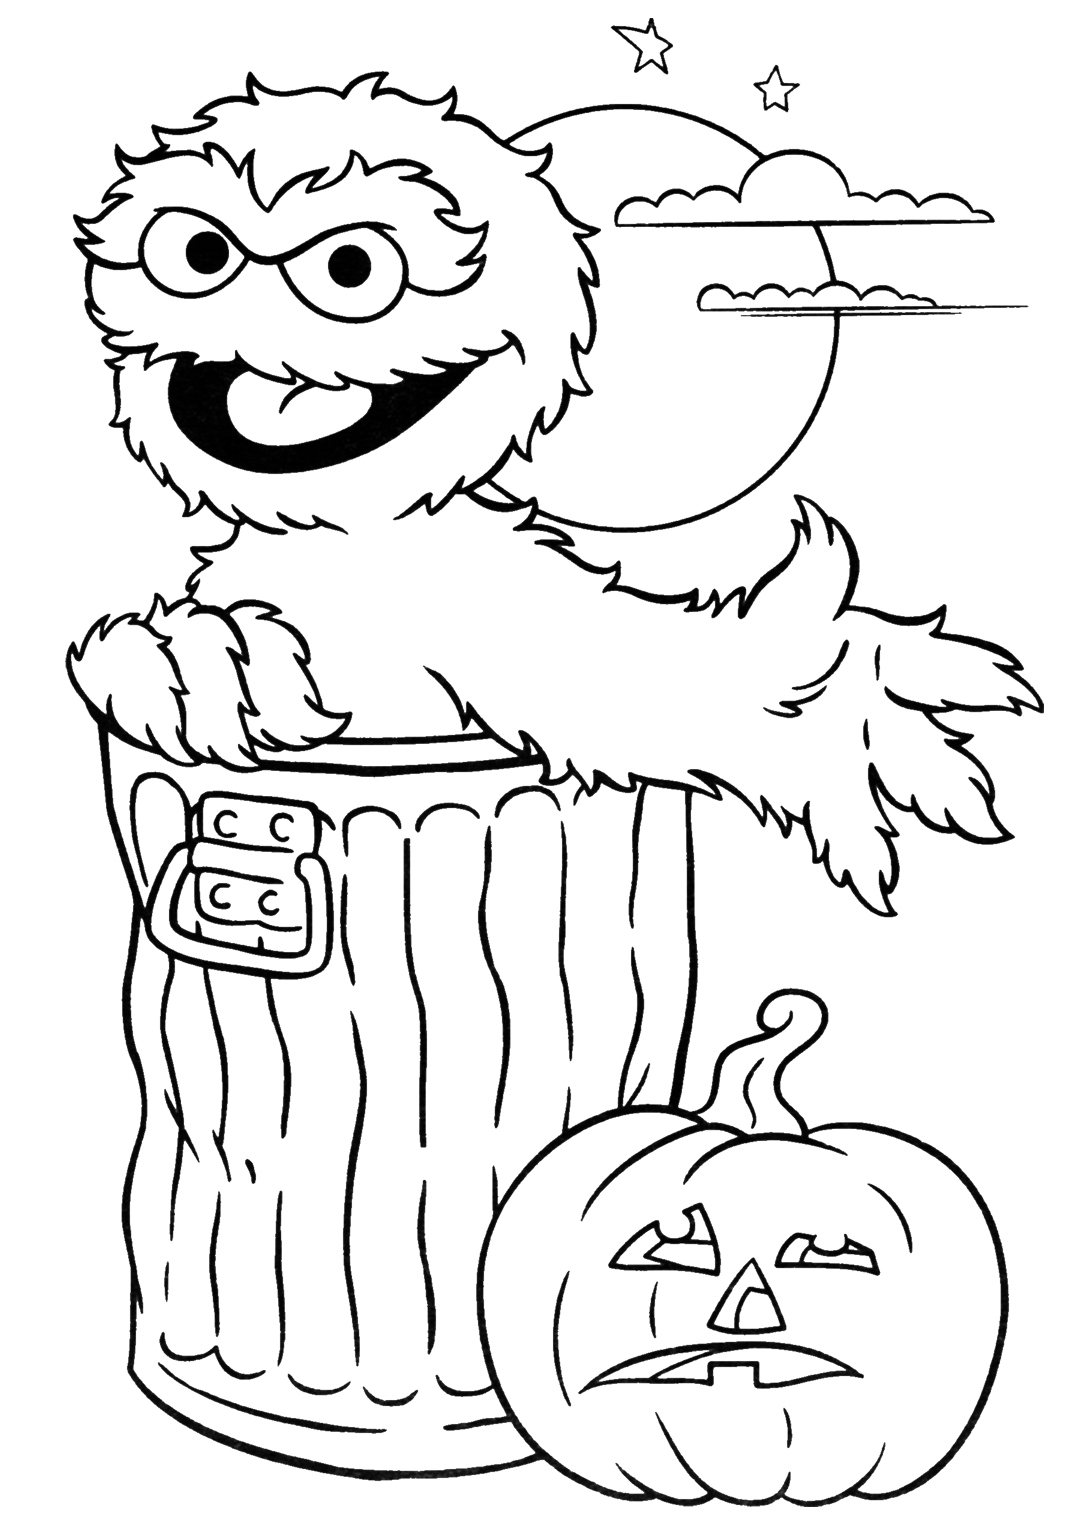 printable halloween coloring pages halloween coloring pages to download and print for free halloween printable coloring pages